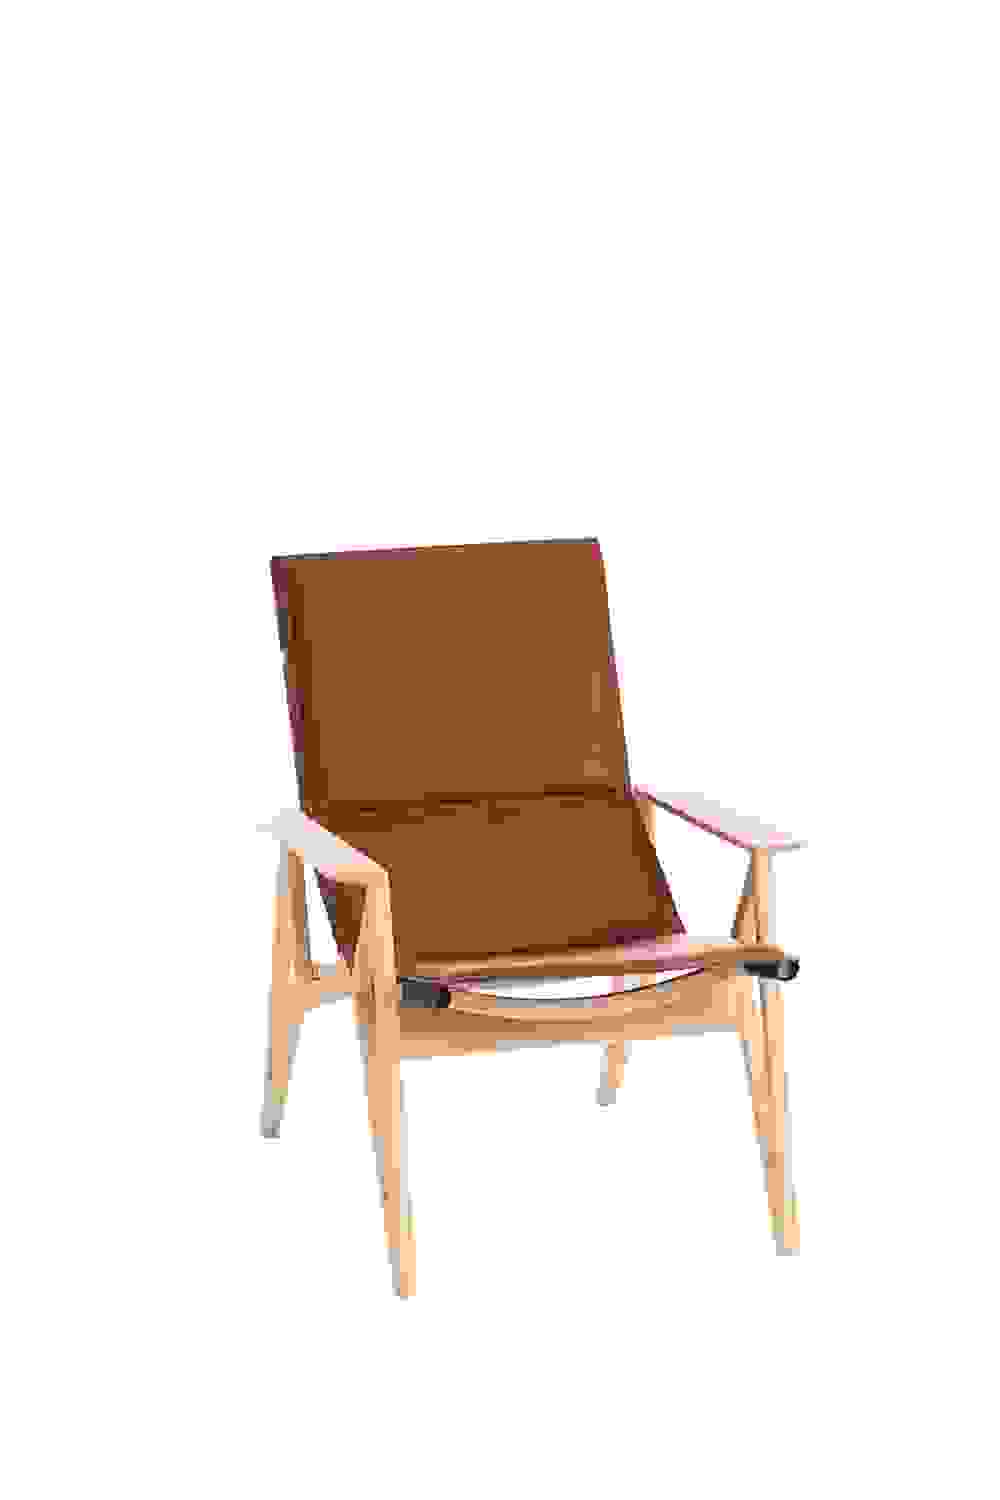 capdell-iconica-chair-03.jpg